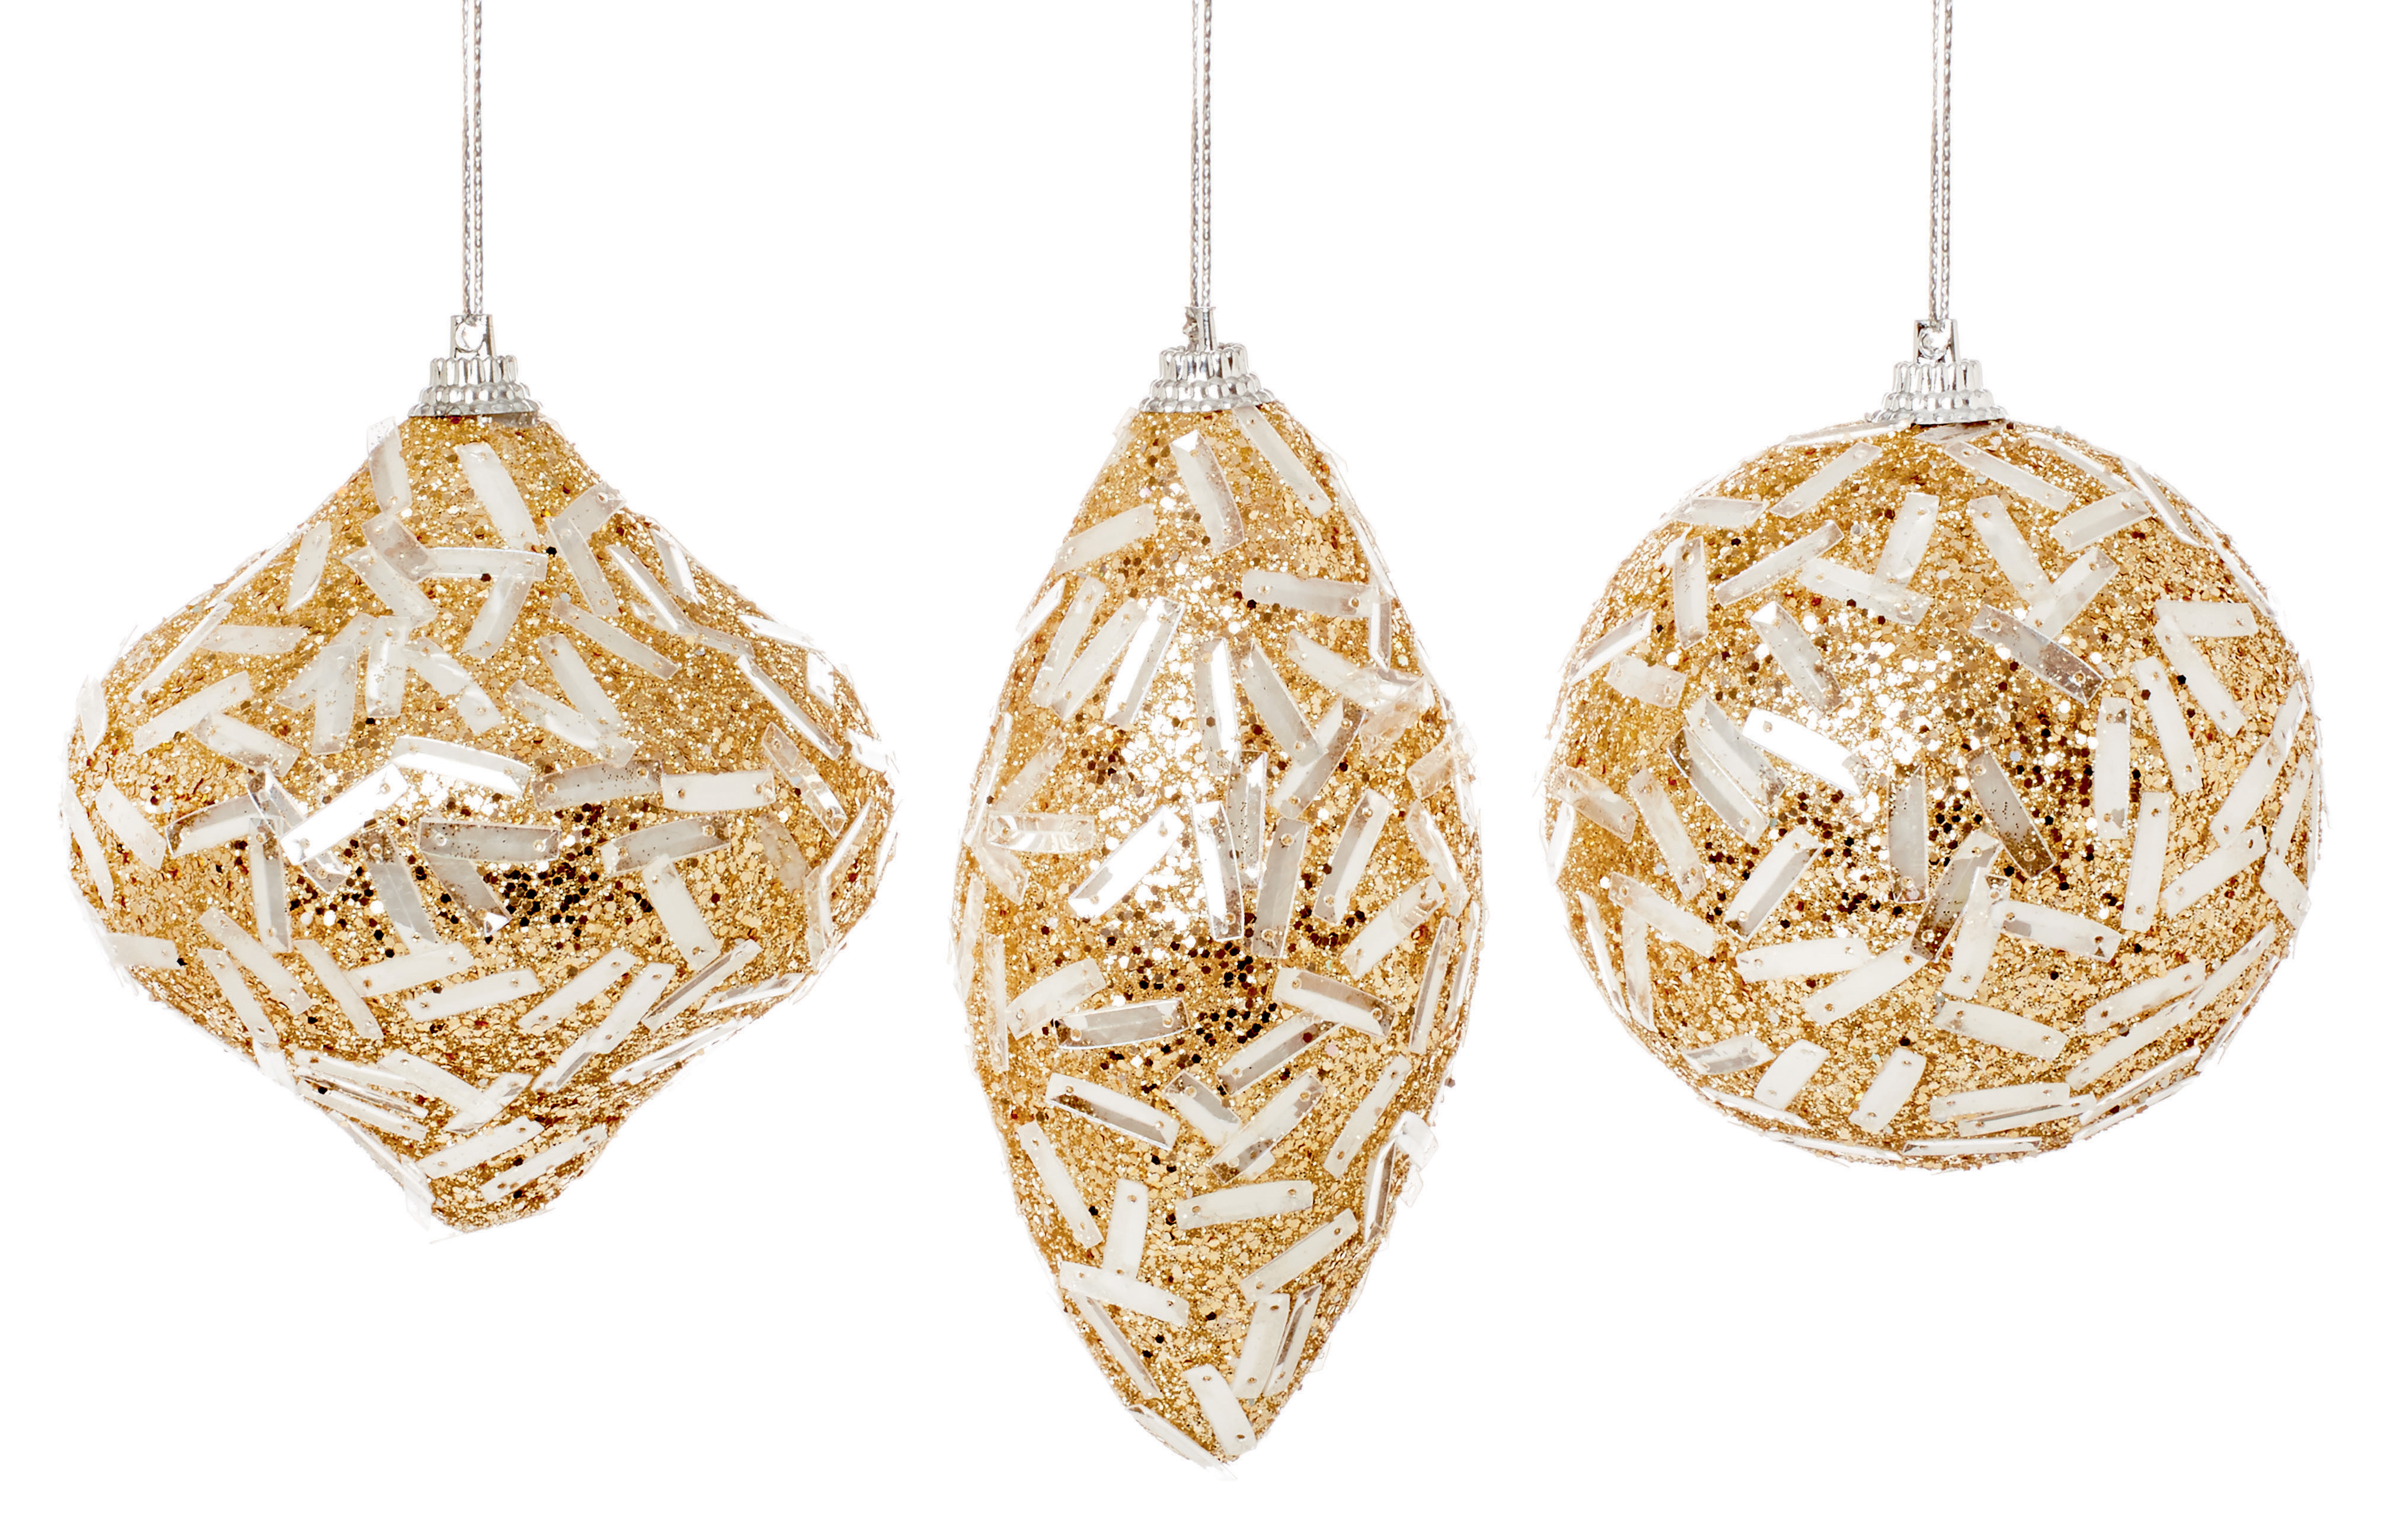 3 X Beautiful Gold Christmas Tree Baubles With Flower